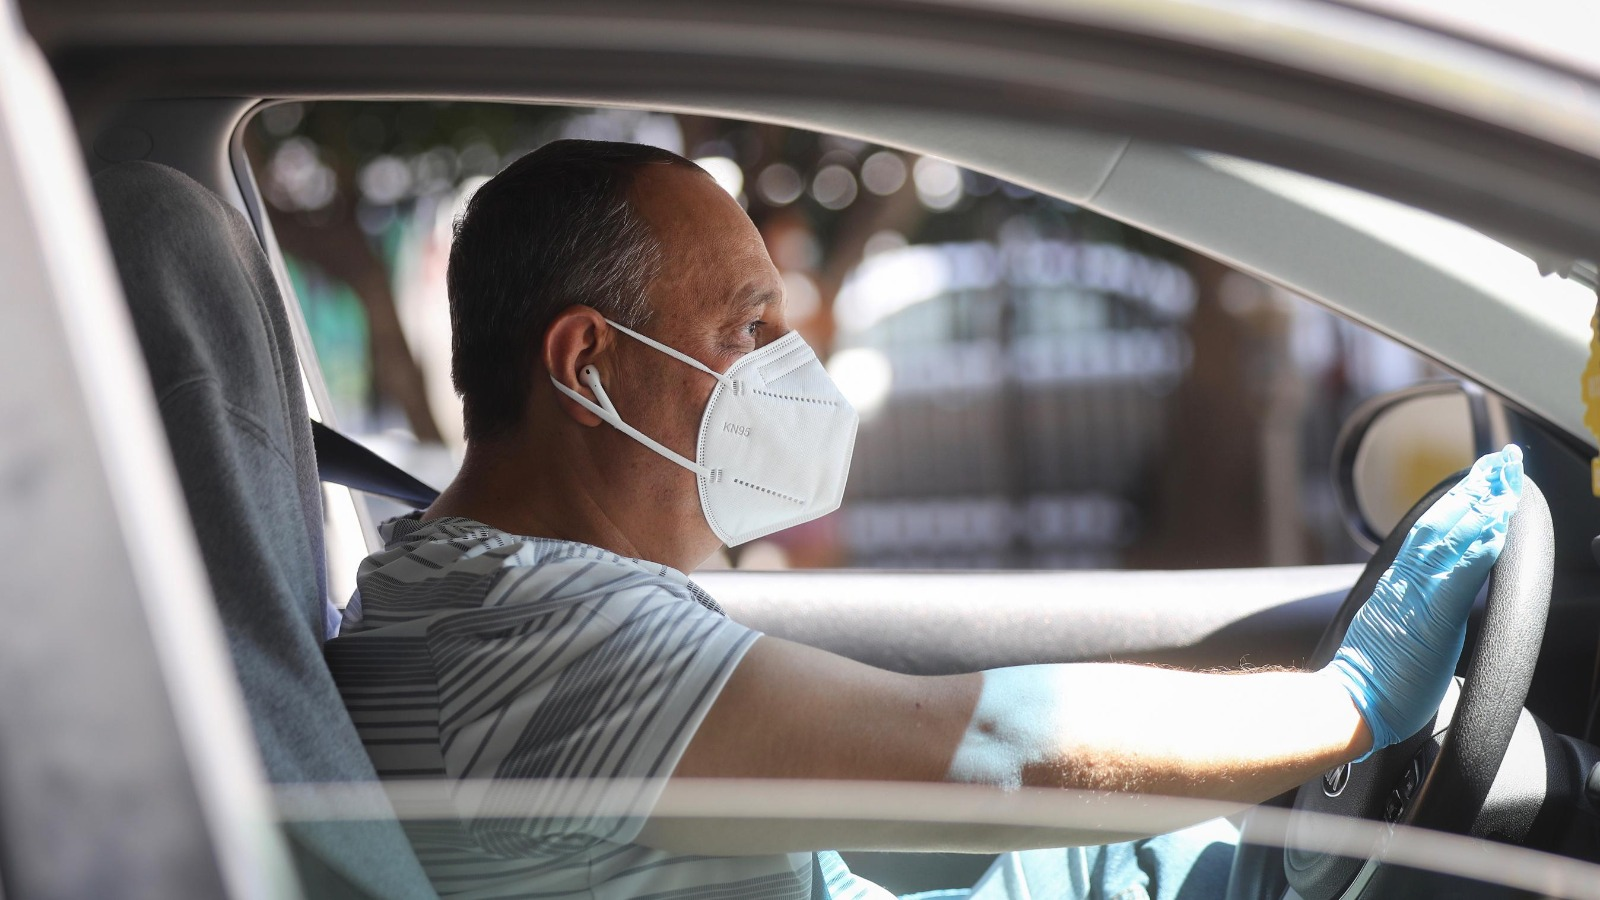 Face masks and coverings will be mandatory in all Uber vehicles from Monday, The Manc